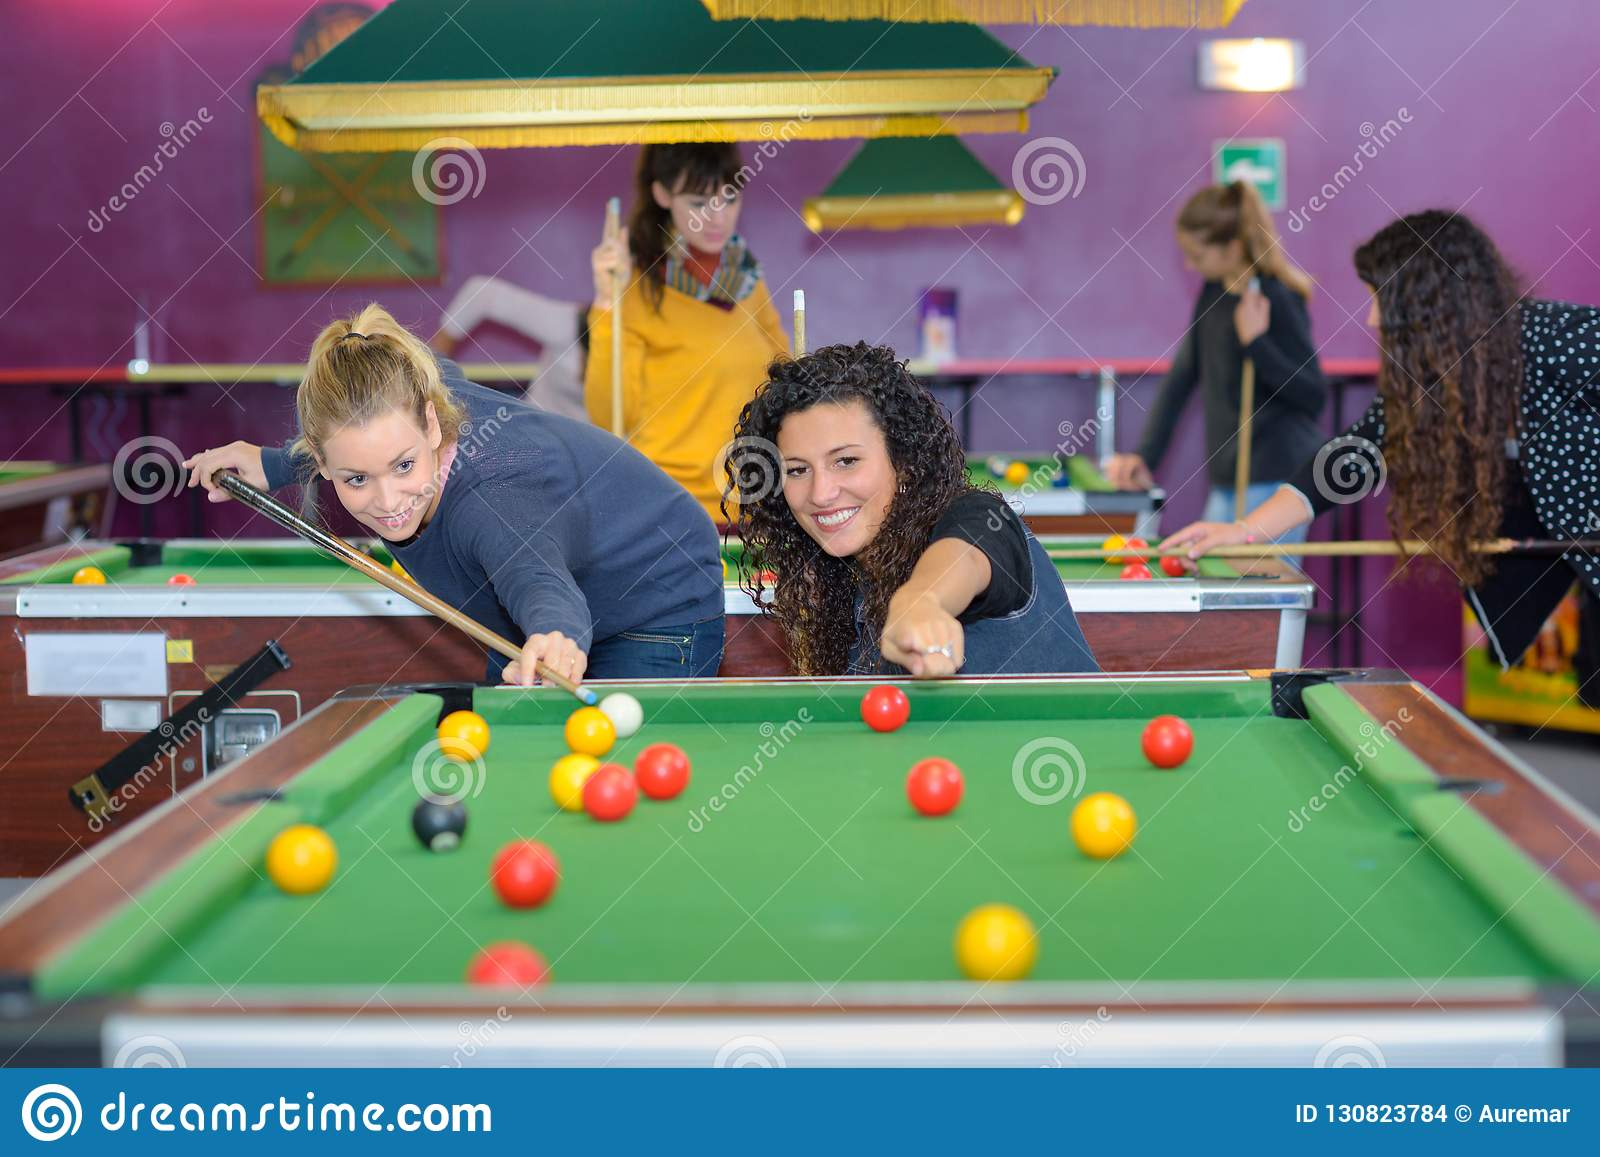 Two female friends playing billiards